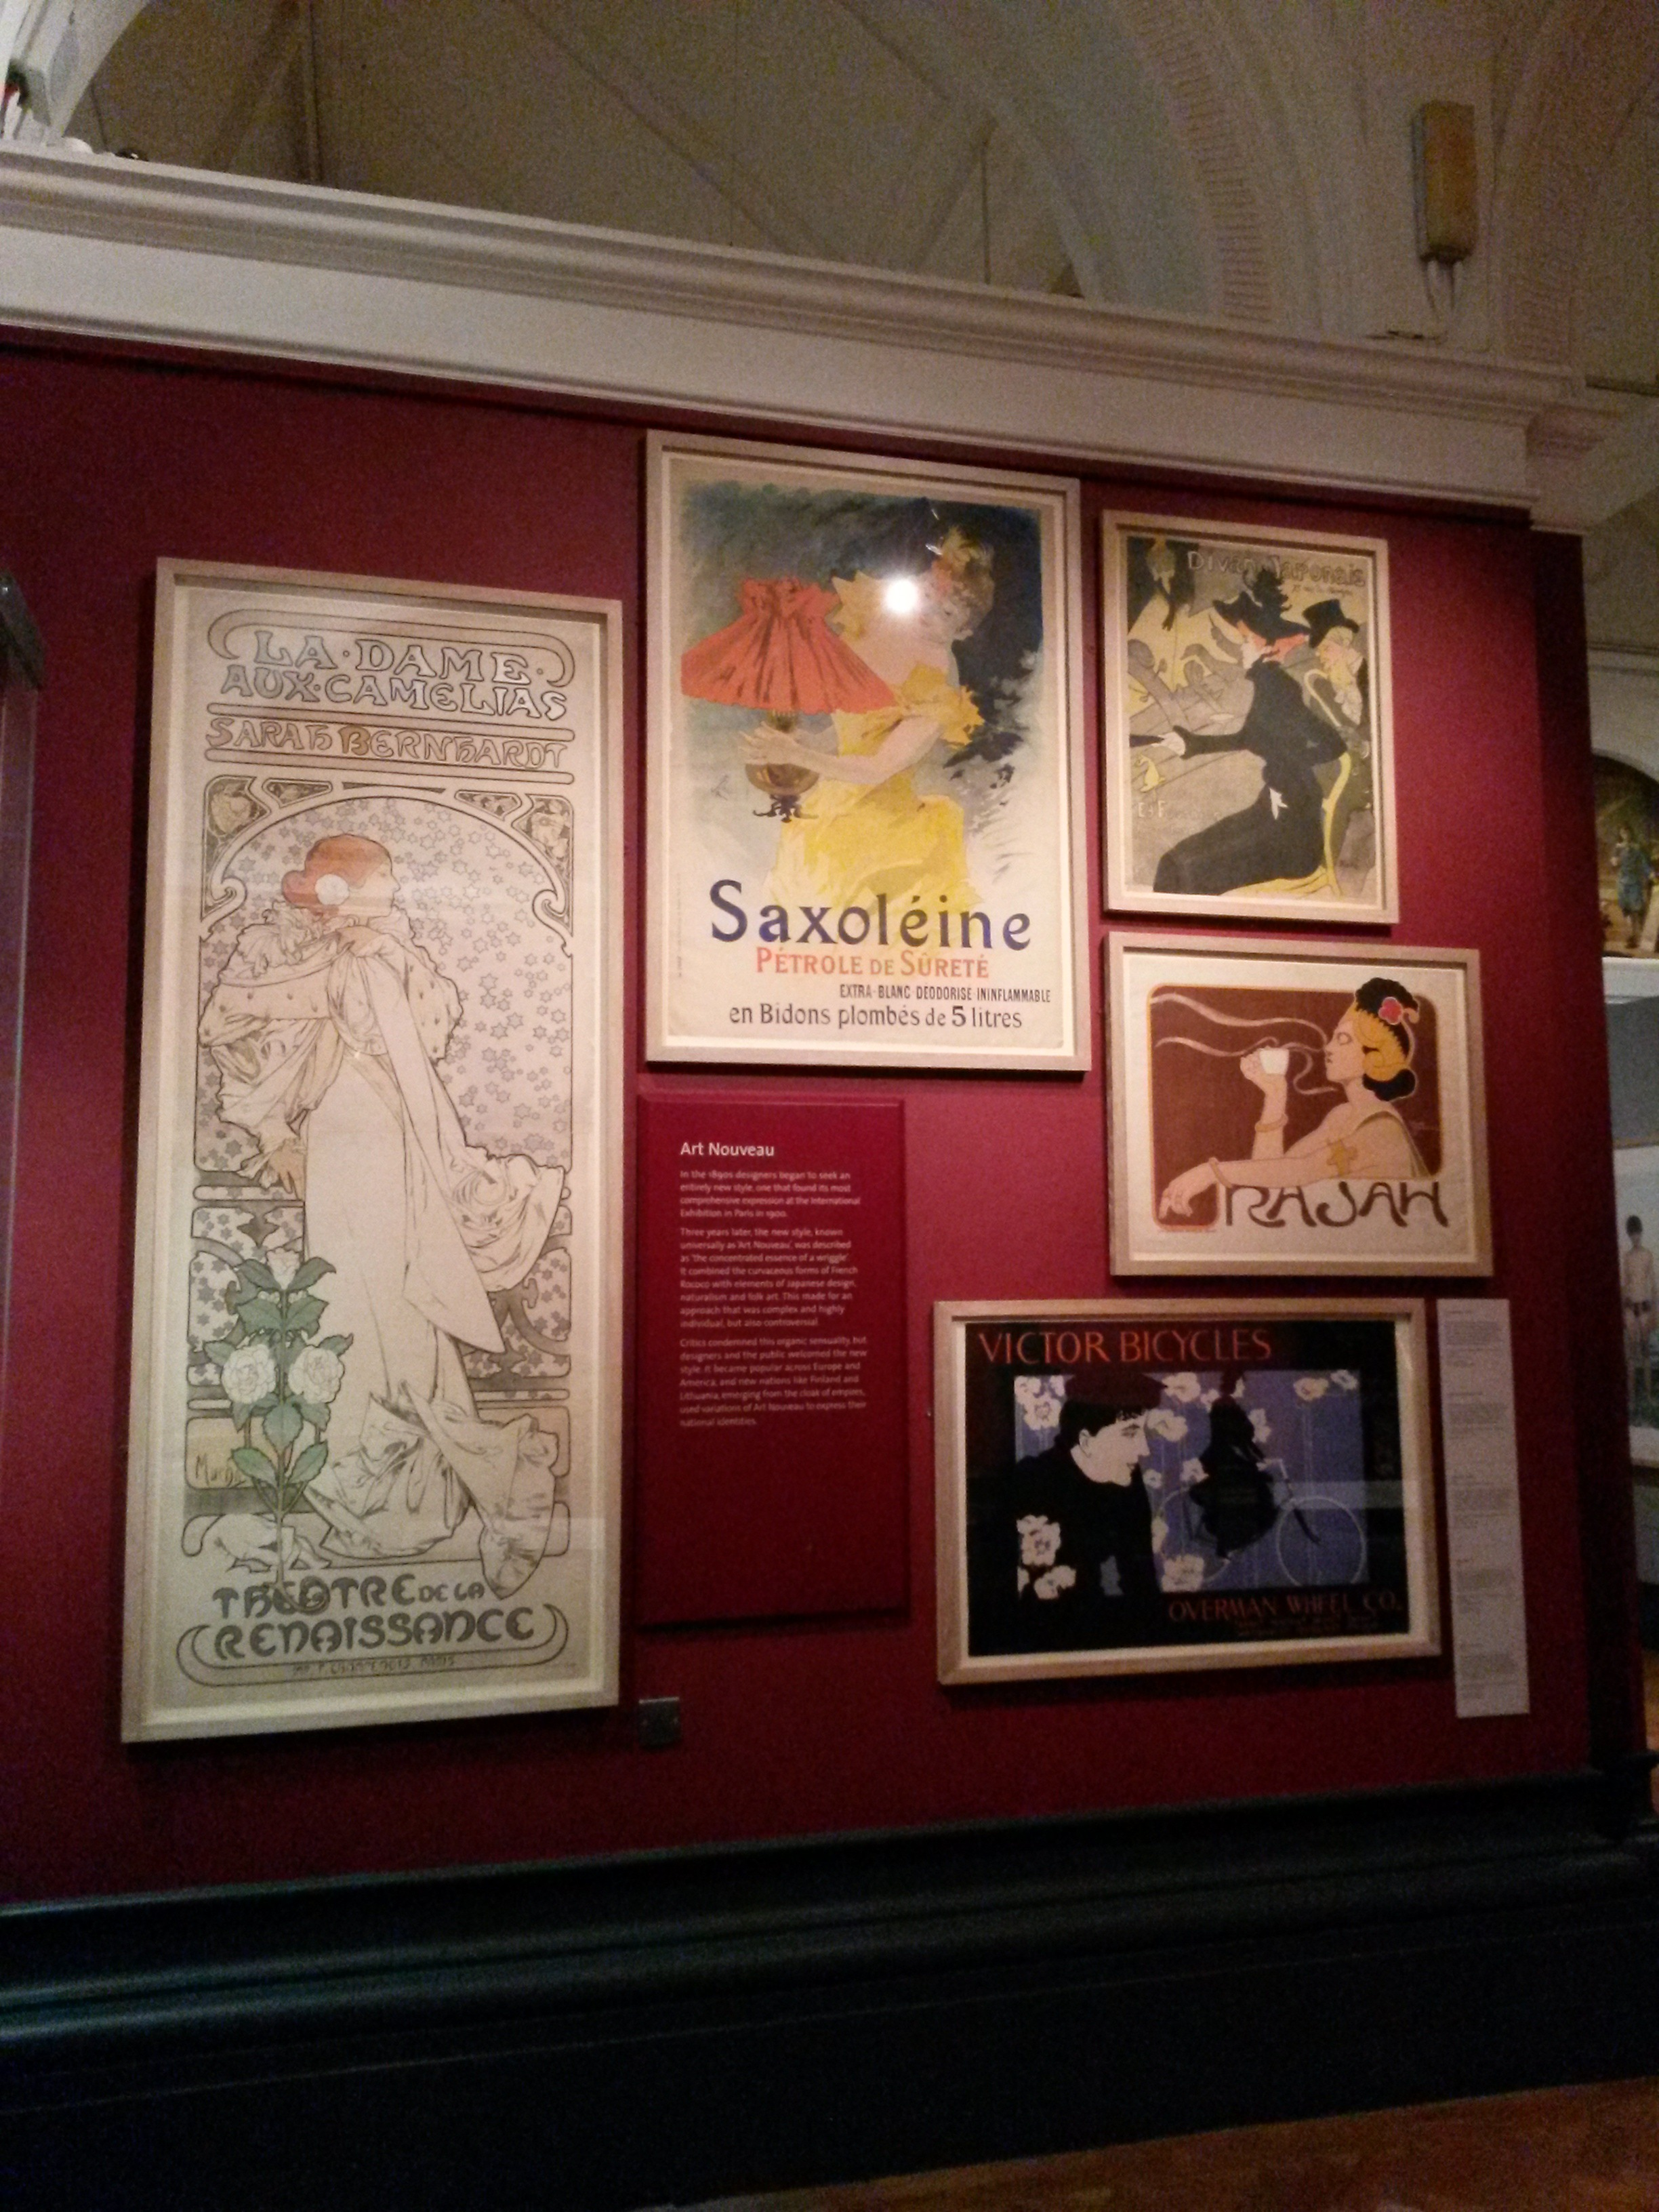 Art Nouveau posters in the V&A